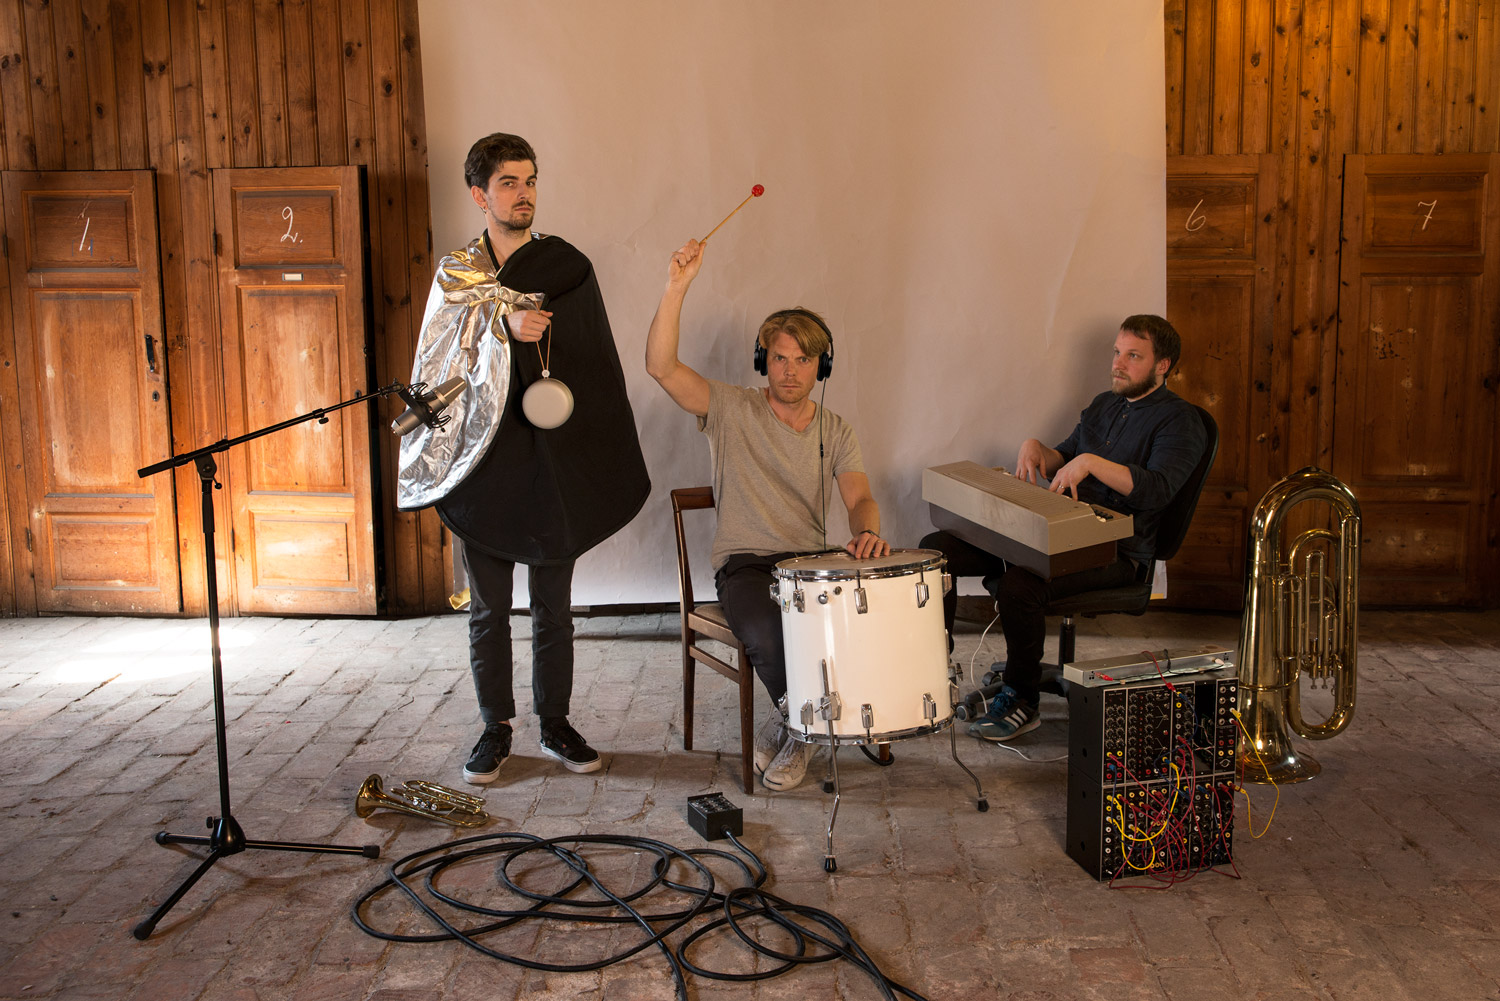 Another day at the office – Members of Plan8 warming up in their Stockholm studio, May 2016. From left: Bali Harko ( Beoplay A1 ), Calle Stenqvist ( H6 ) and Karl­ Johan Råsmark (keys)